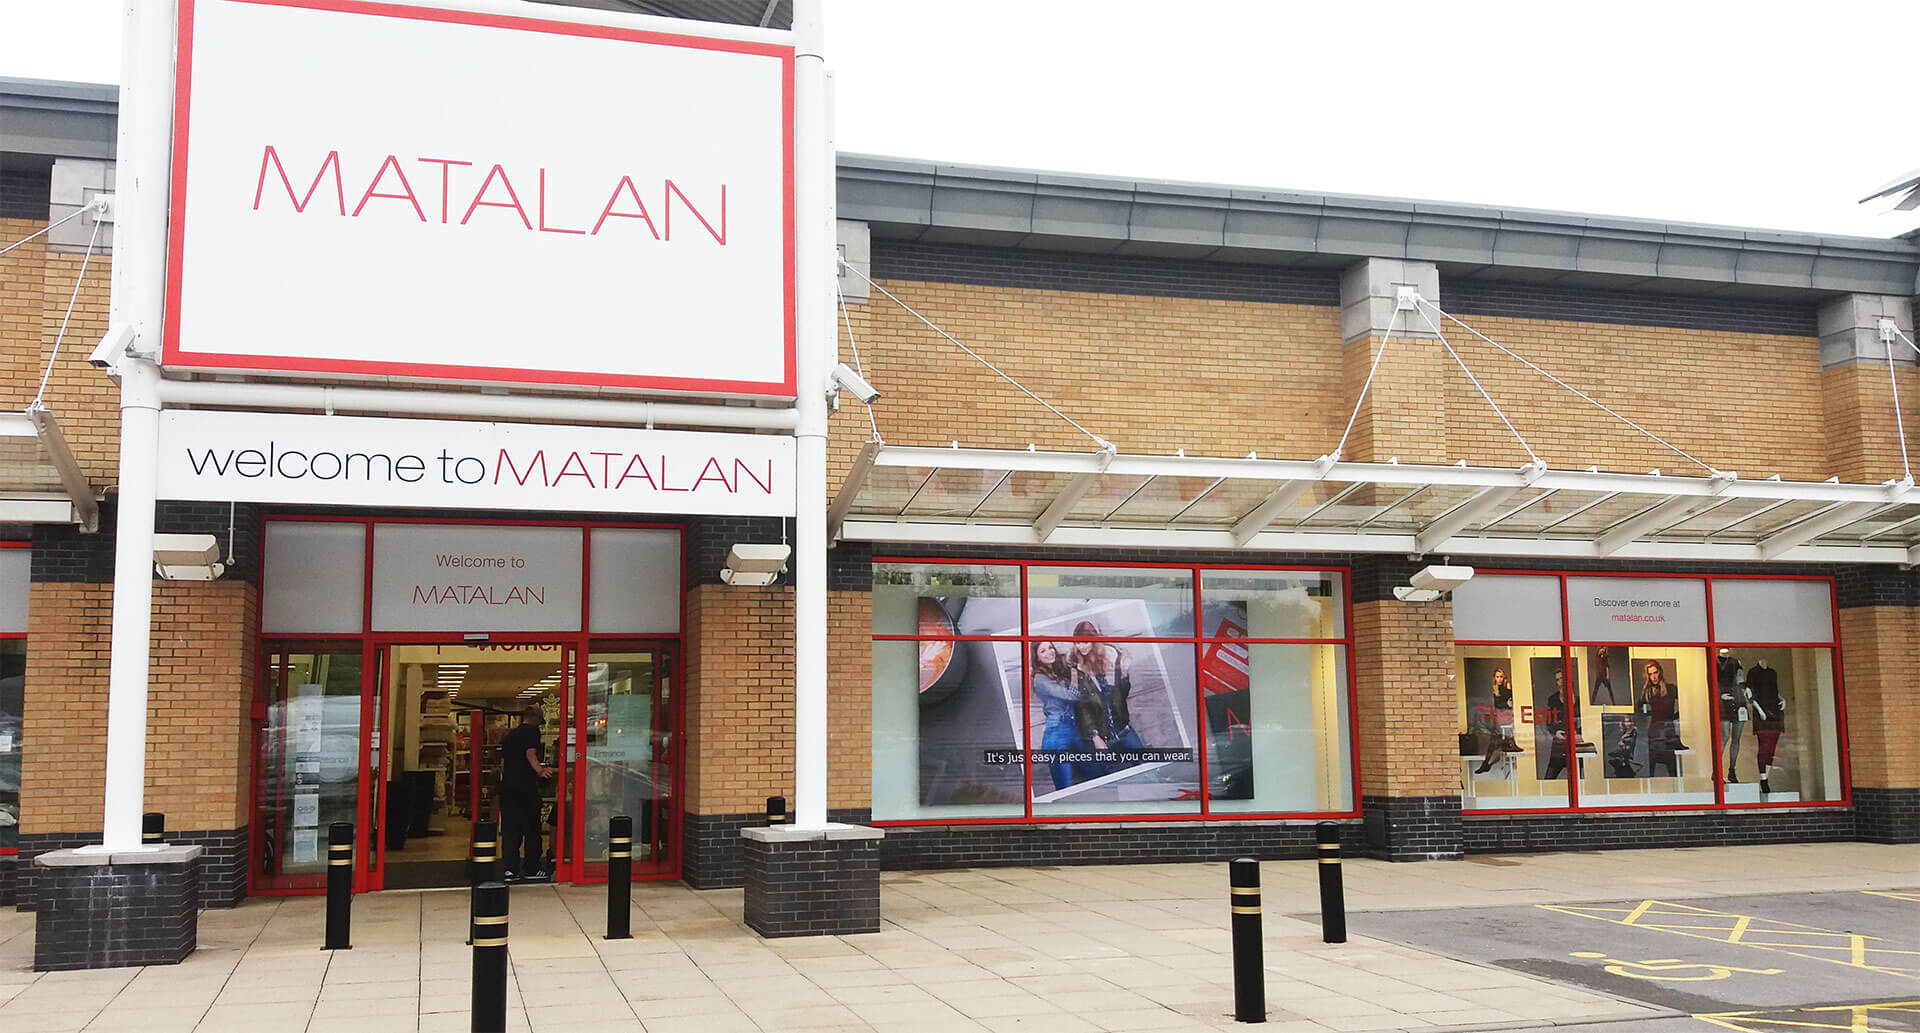 Eclipse Digital Media - Digital Signage Solutions - Matalan Indoor LED Wall - Outside Full